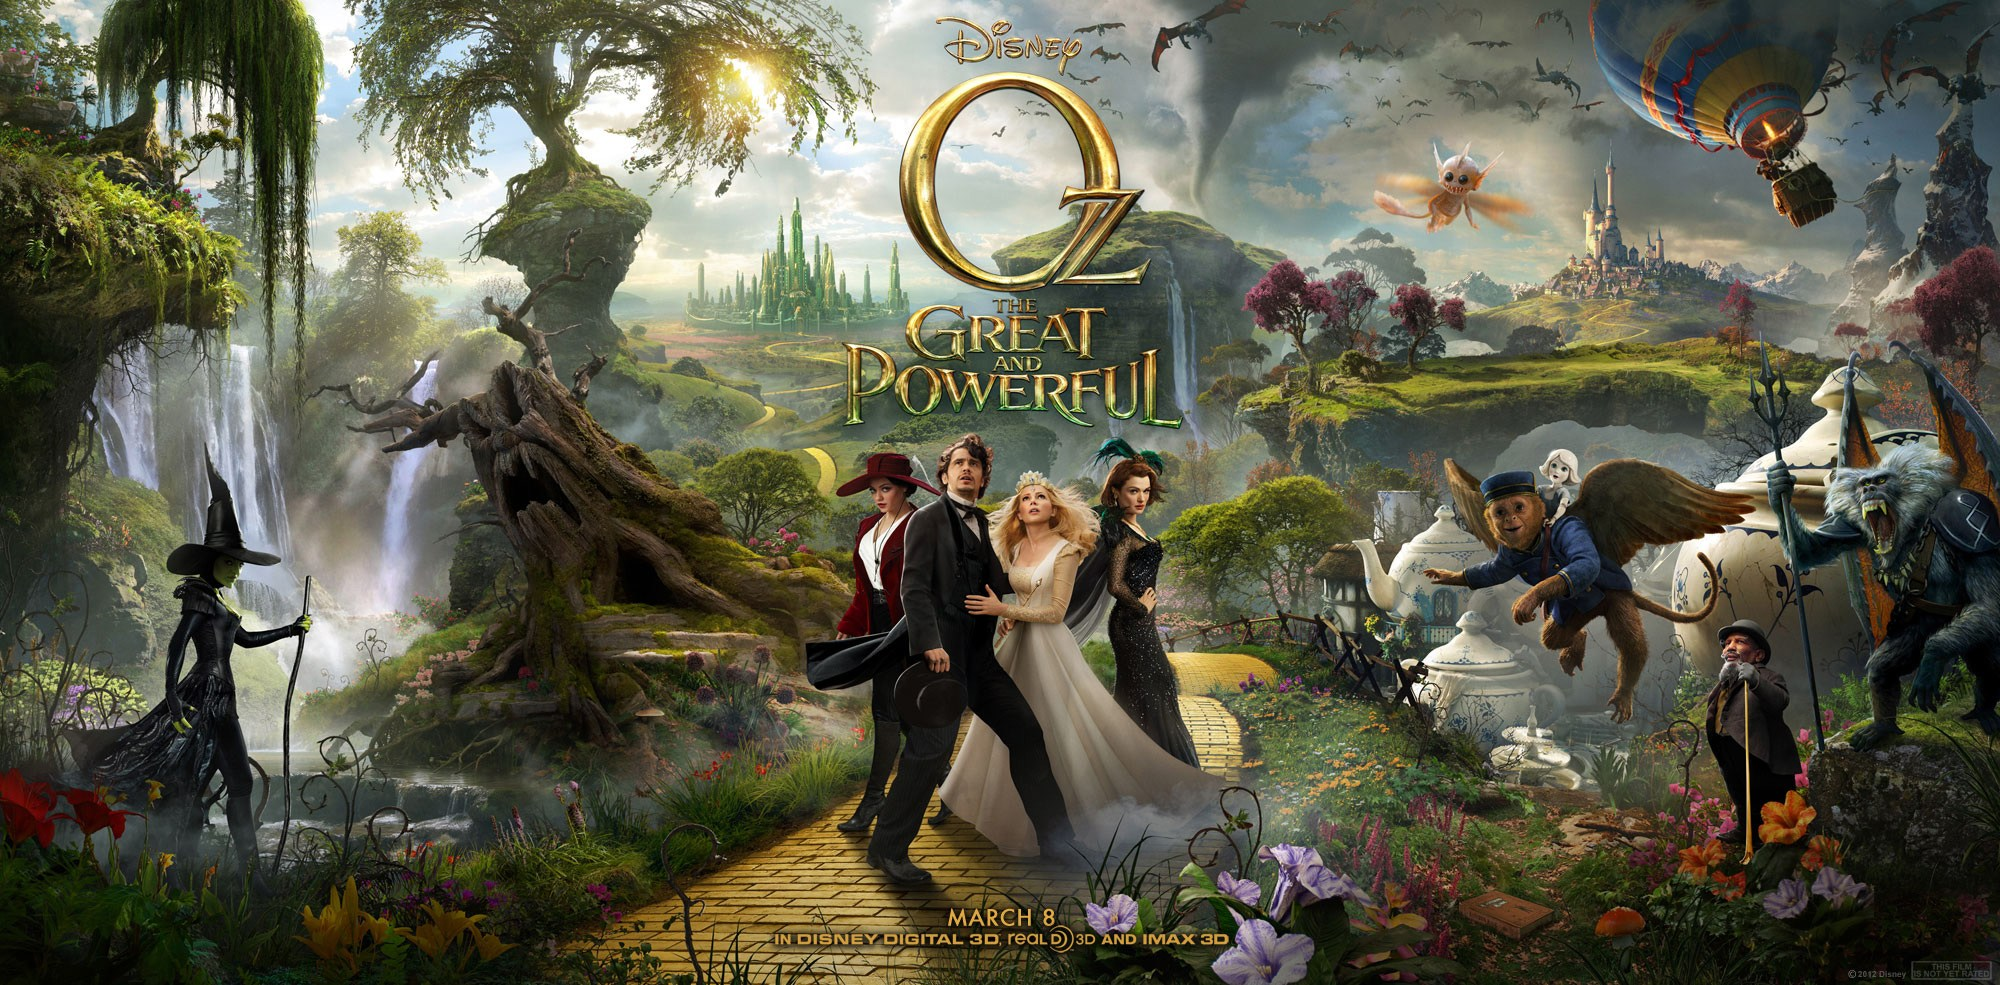 Oz-The-Great-and-Powerful-full-triptych-poster.jpg